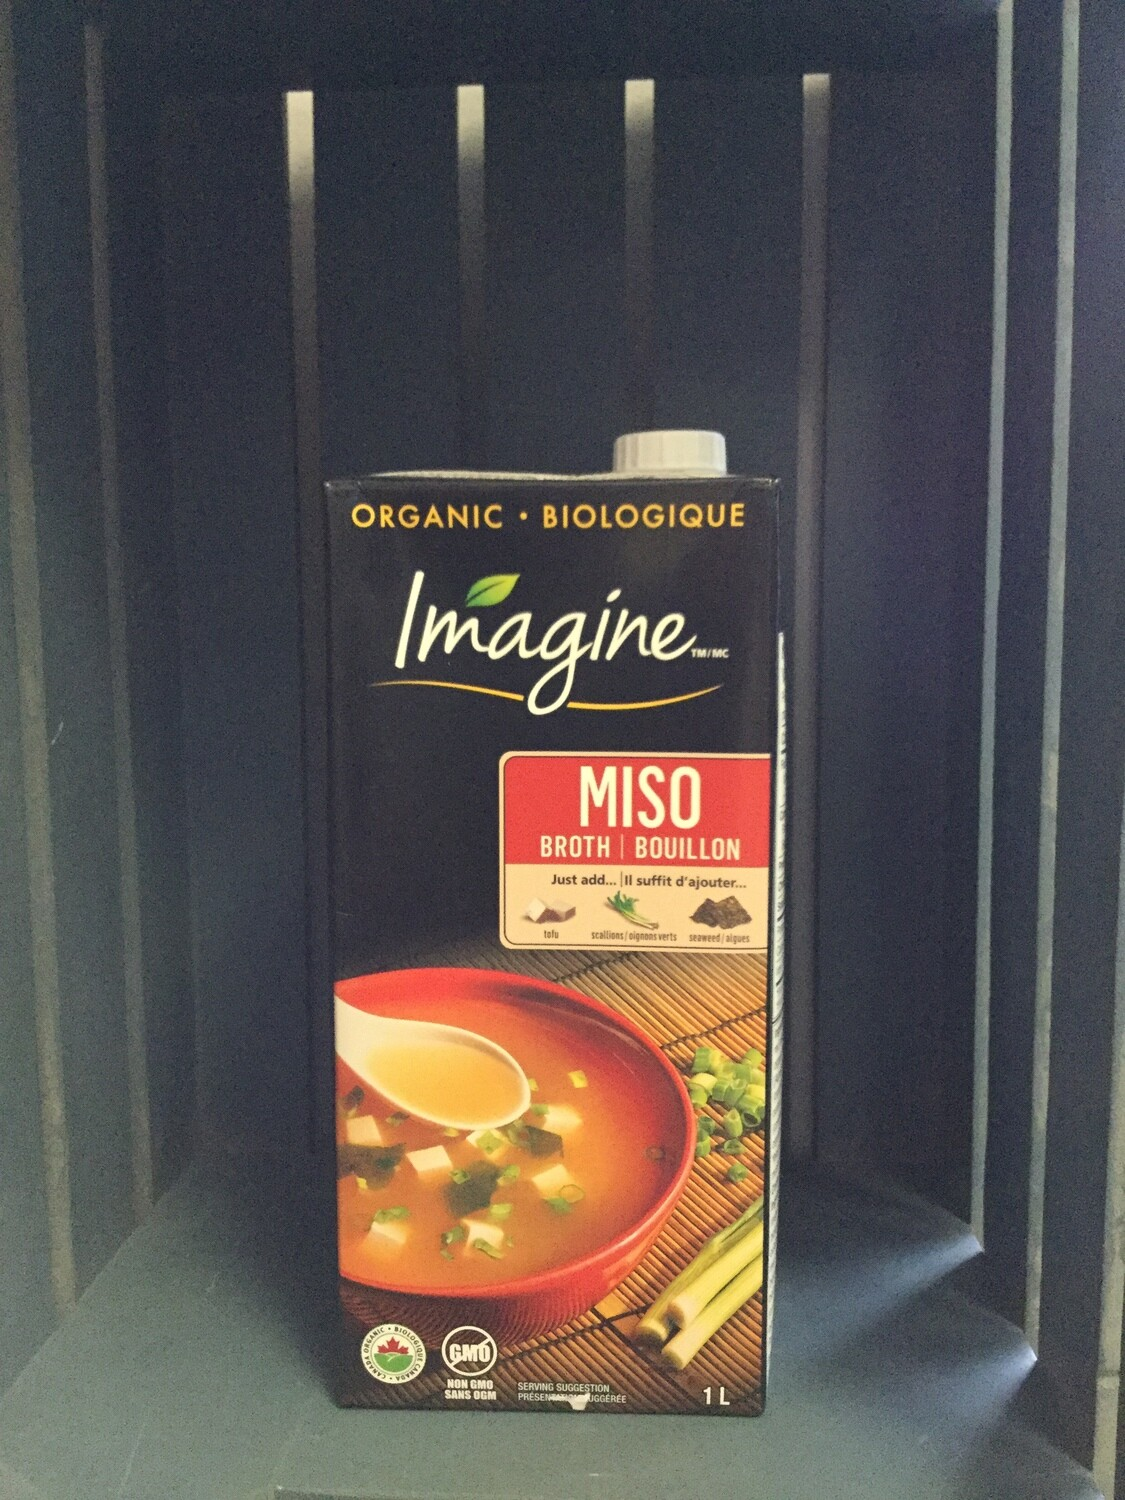 IMAGINE Miso Broth 1L